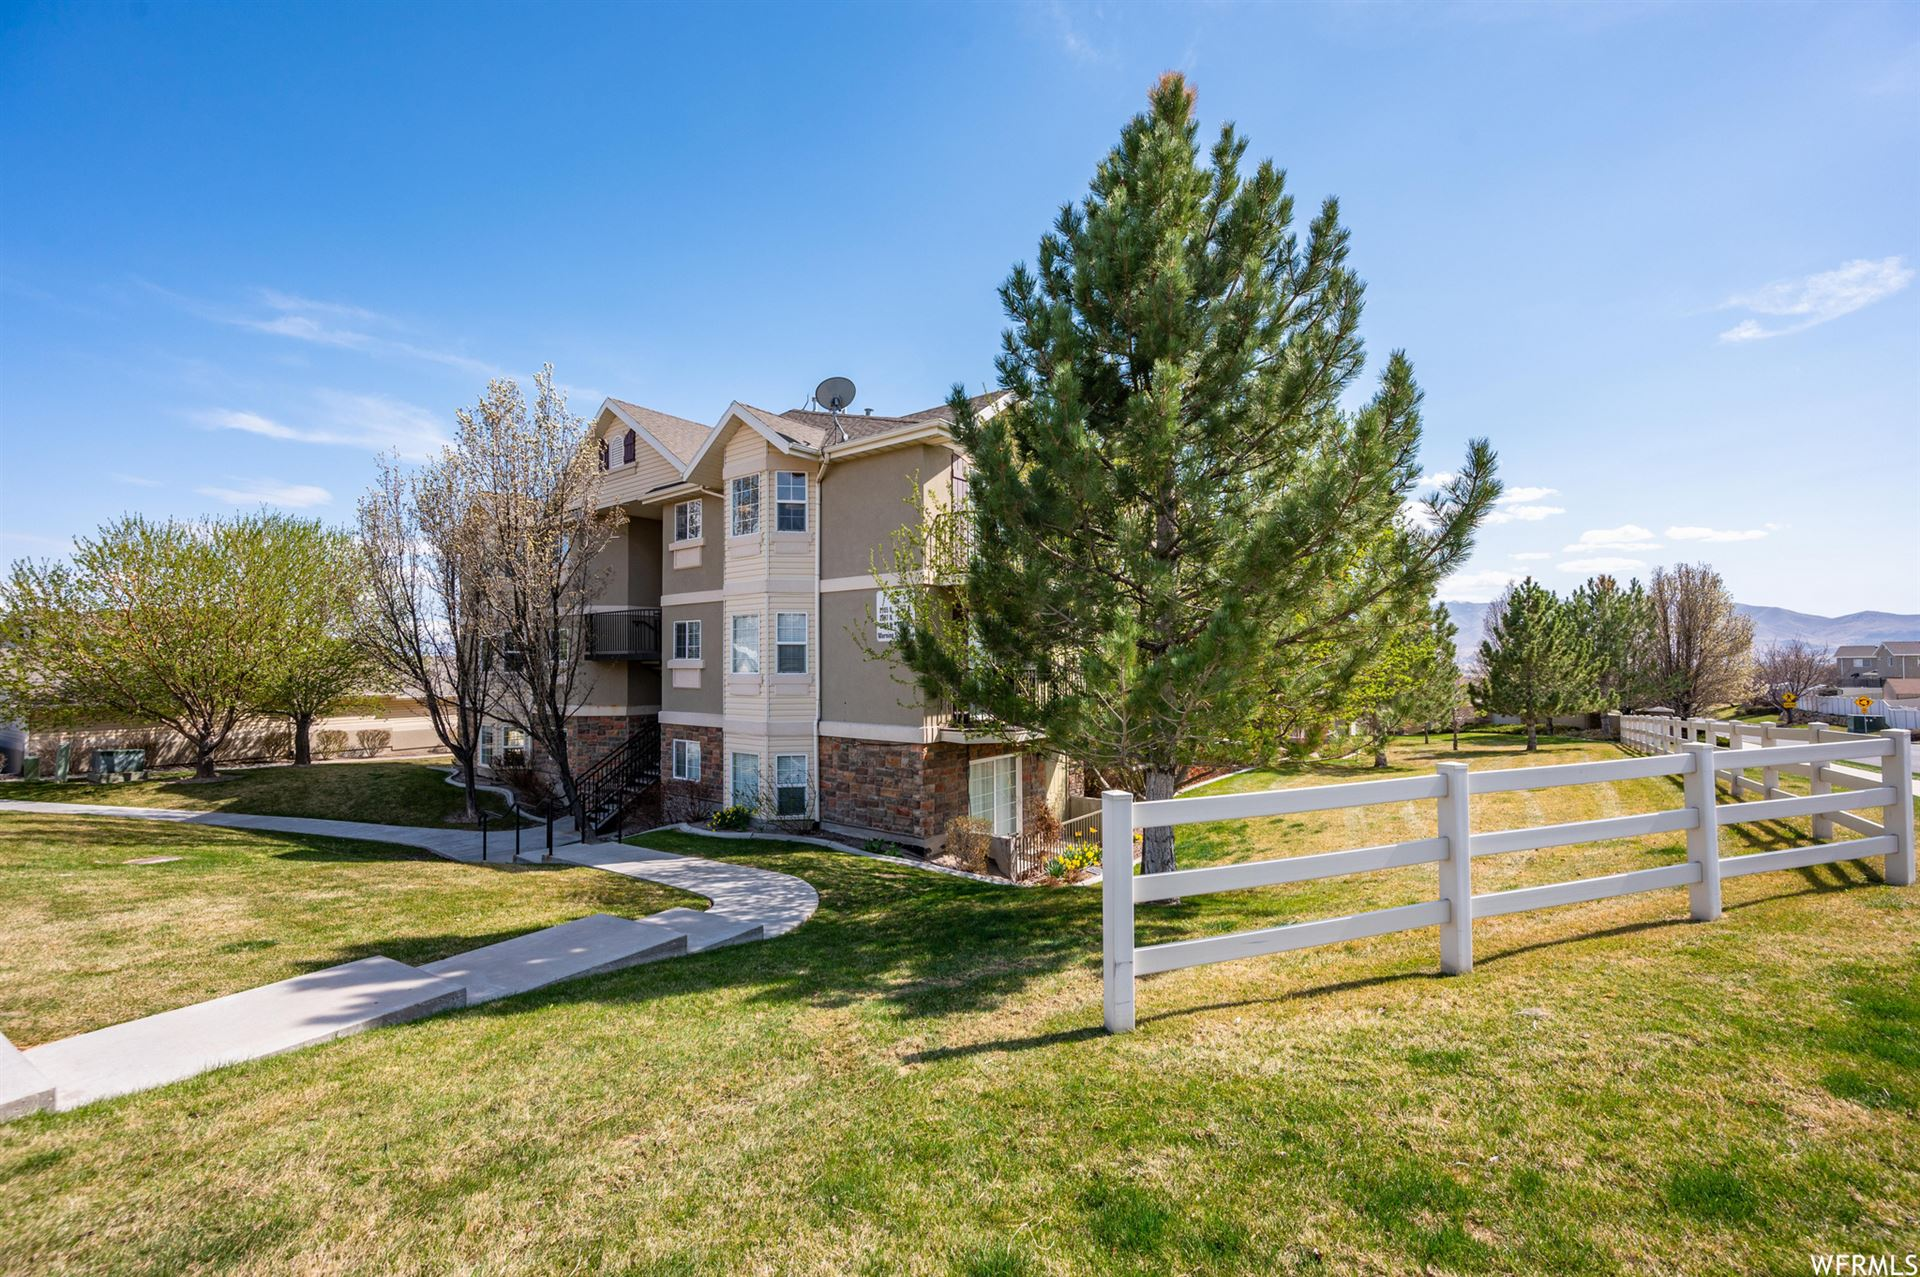 Photo of 2103 N MORNING STAR W DR #11, Saratoga Springs, UT 84045 (MLS # 1734830)